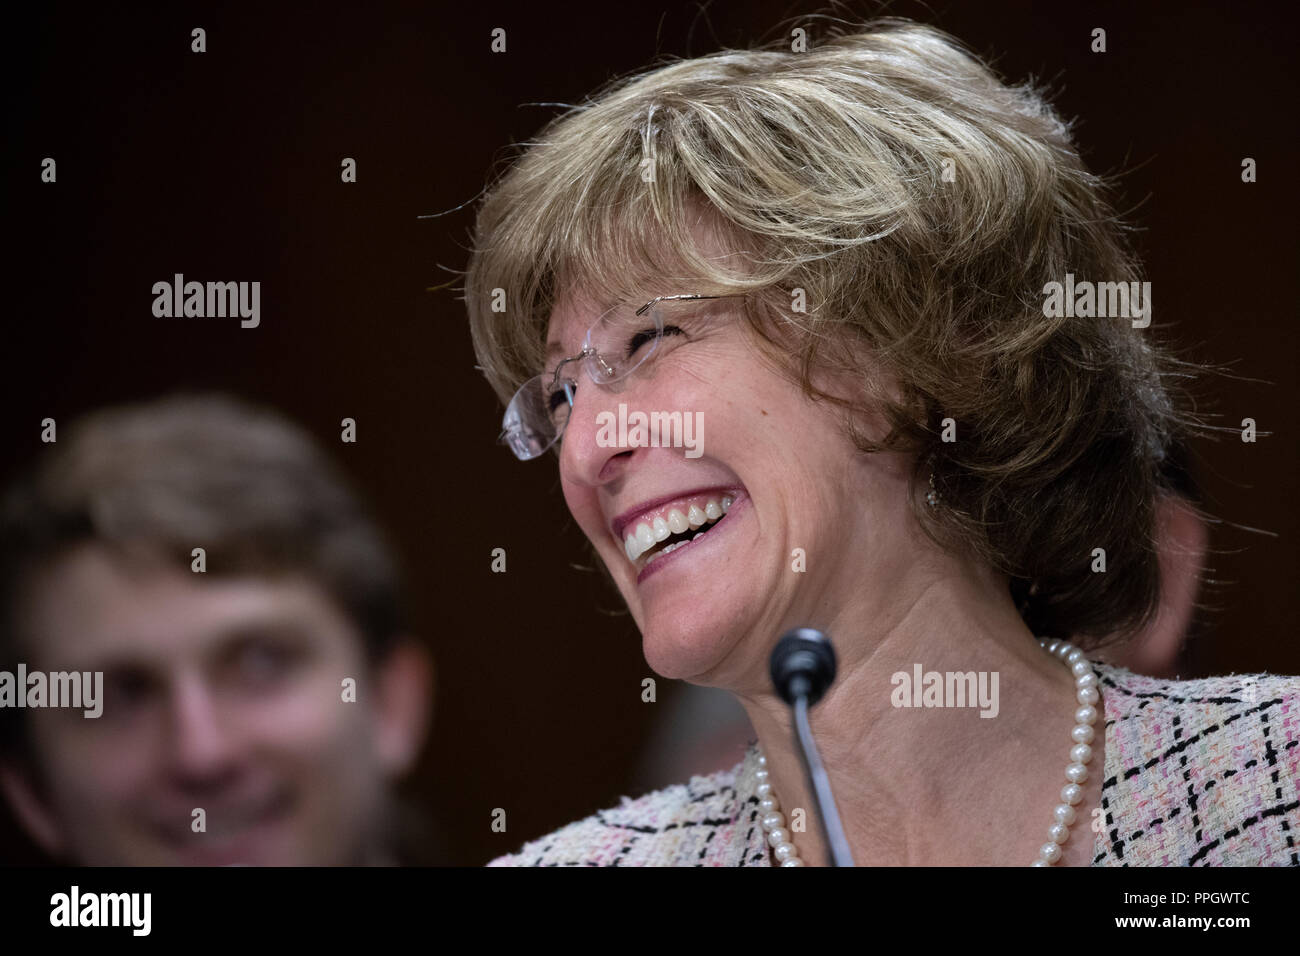 Washington, United States Of America. 25th Sep, 2018. Bonnie Glick testifies during a hearing to confirm new administrators for the United States Agency for International Development on Capitol Hill in Washington, DC on September 25, 2018. Credit: Alex Edelman/CNP | usage worldwide Credit: dpa/Alamy Live News - Stock Image